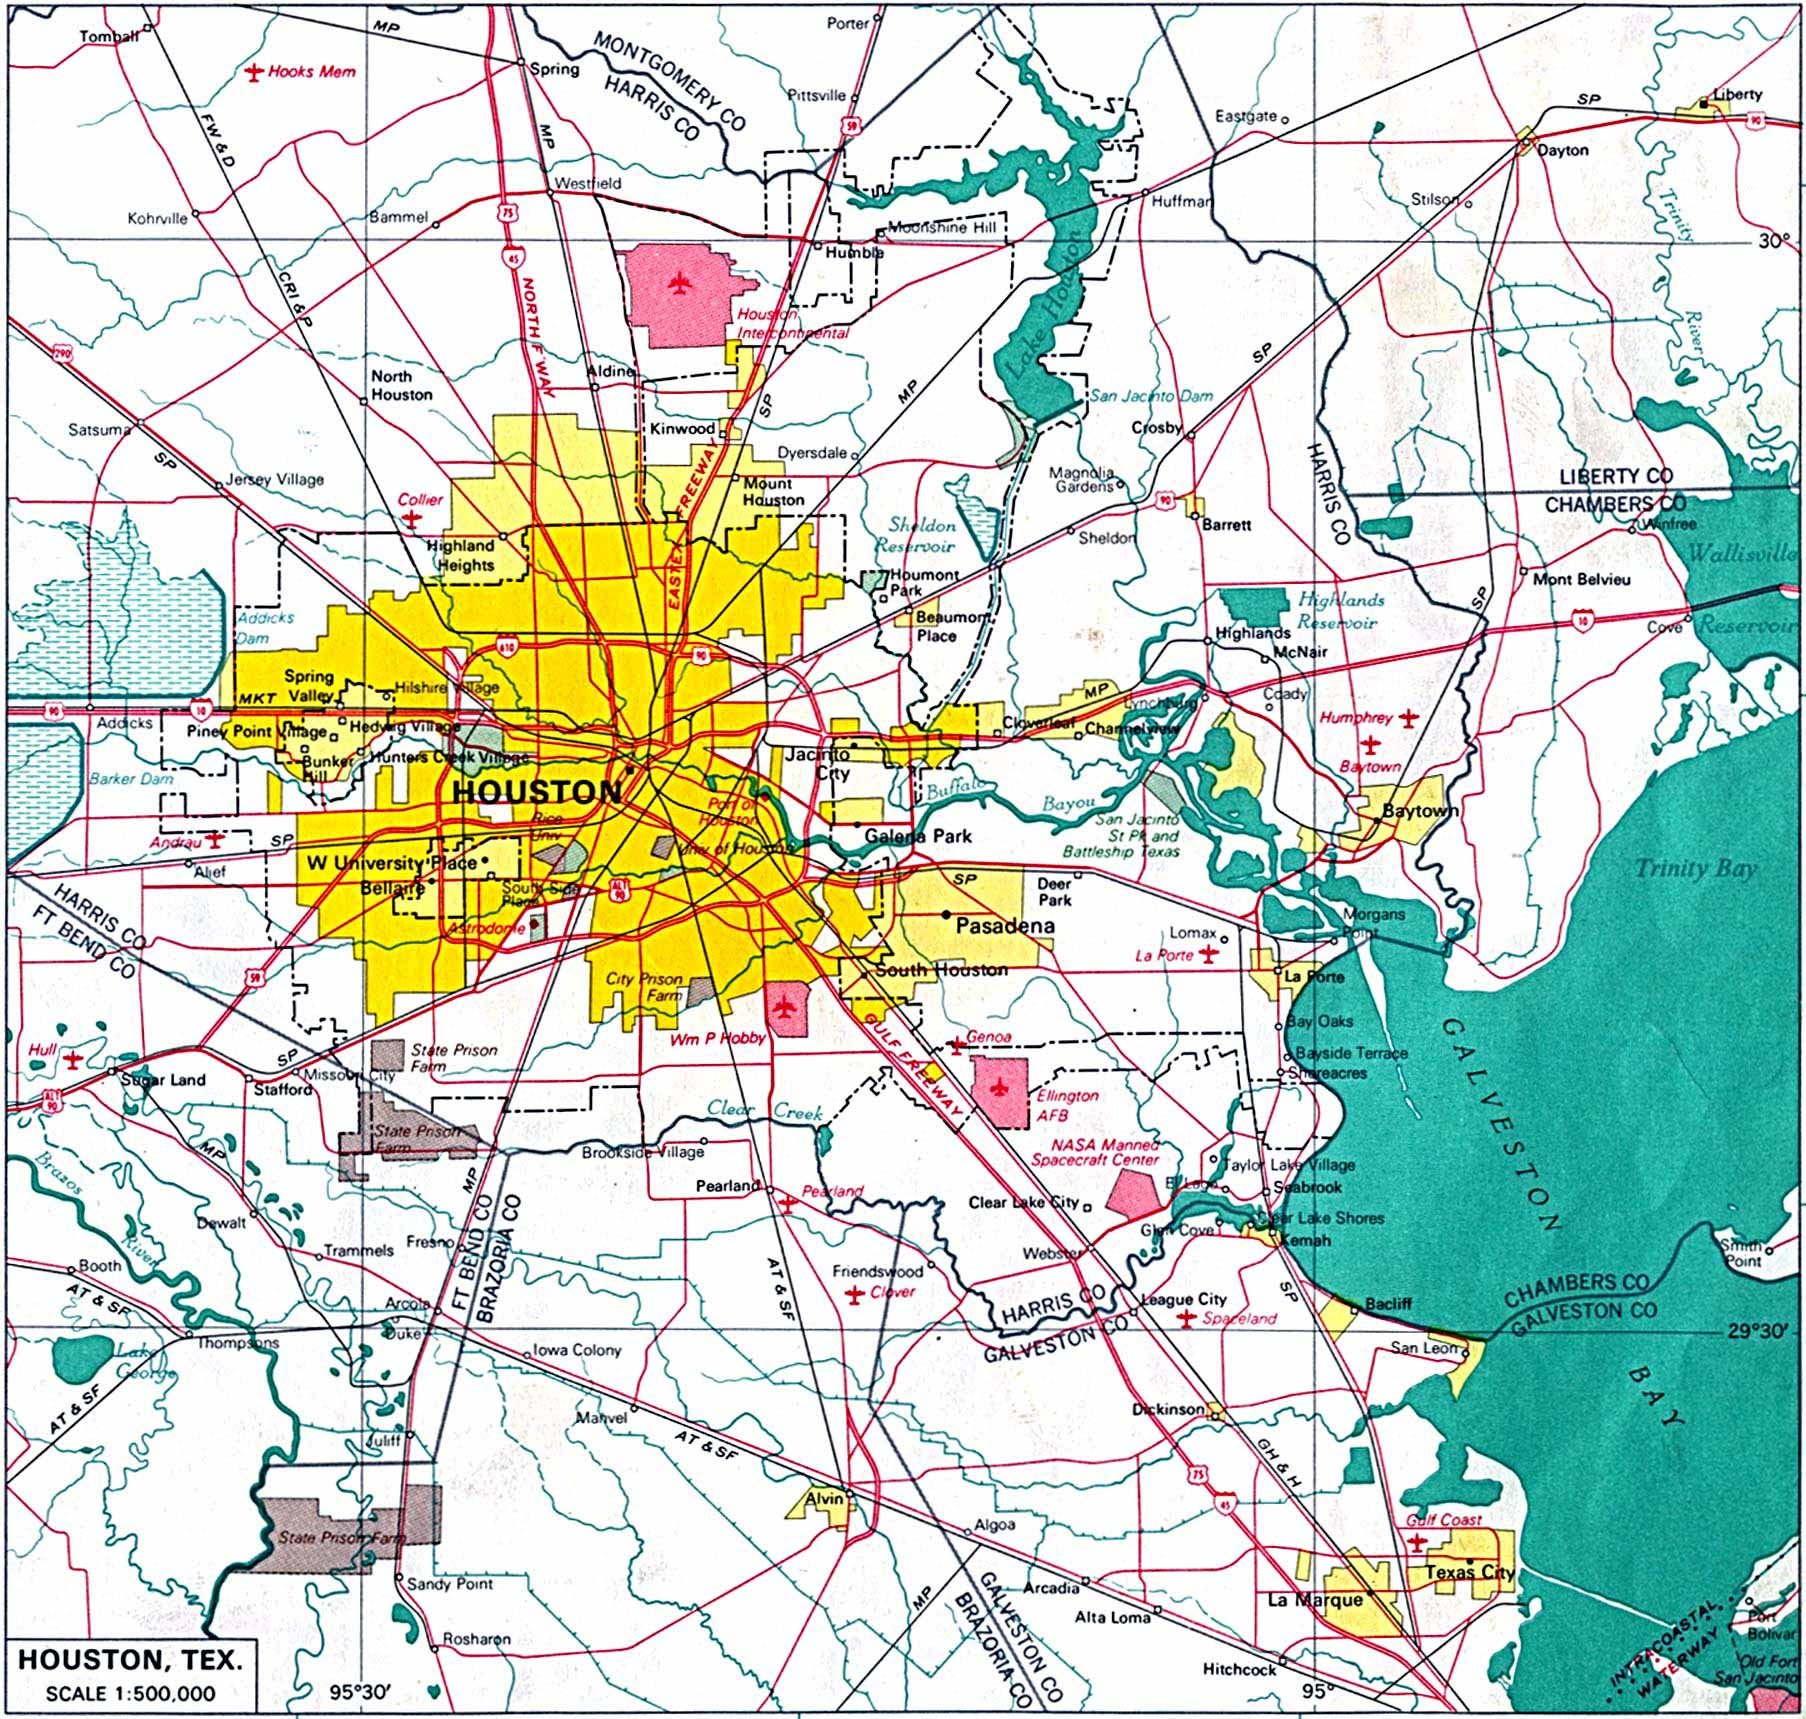 Large Houston Maps For Free Download And Print   High-Resolution And - Printable Map Of Houston